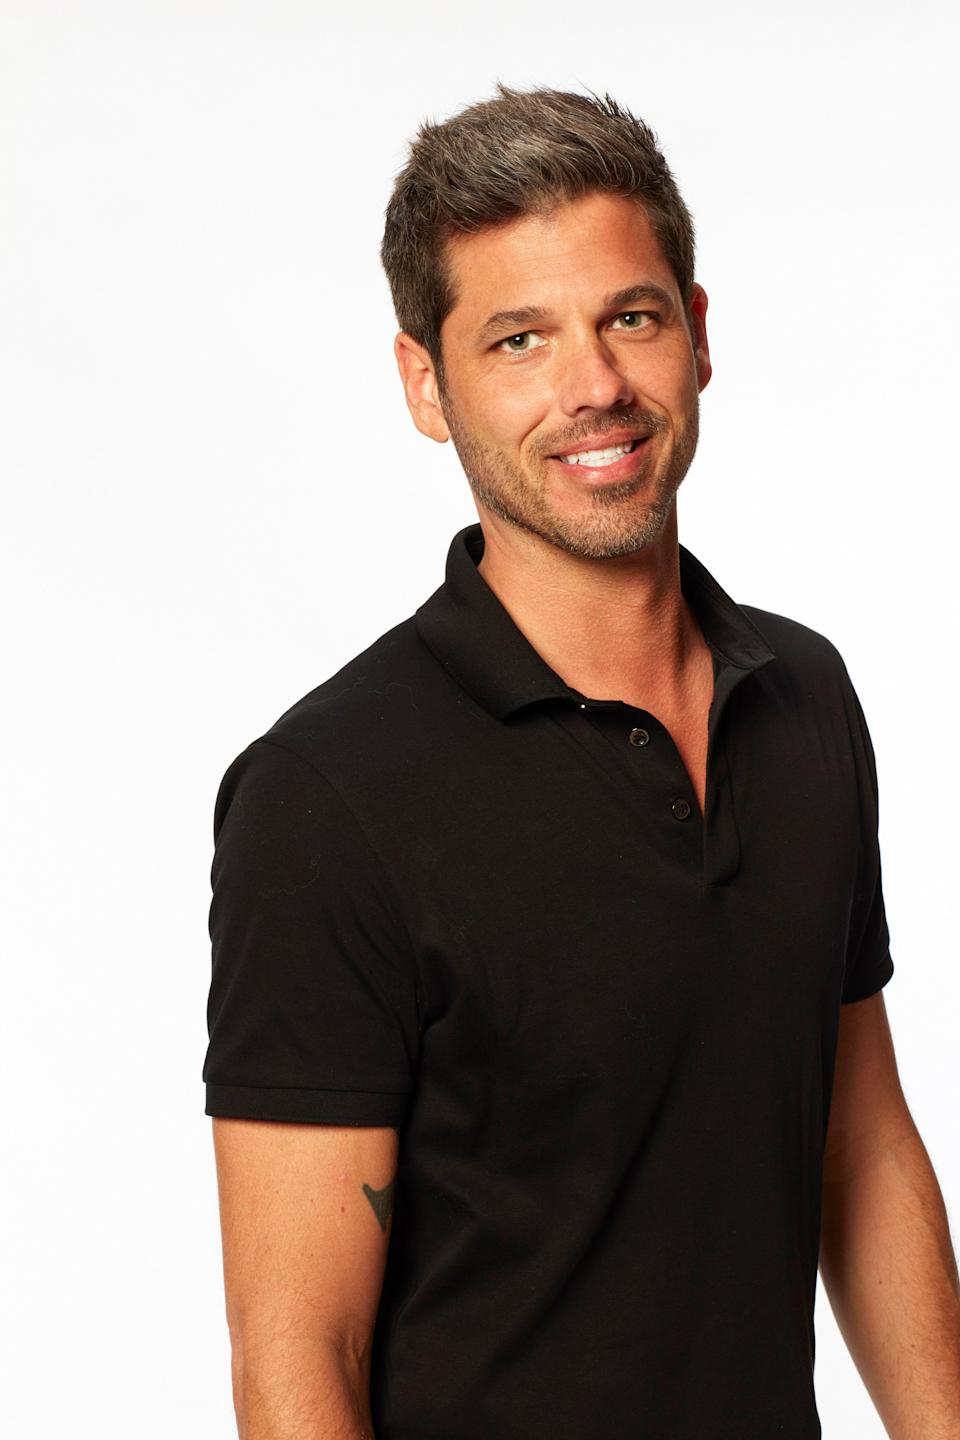 """Jeremy, 40, is officially the oldest contestant ever to come on <em>The Bachelorette</em>. I'm all for more age diversity in Bachelor Nation, but Jeremy claims he's still single because his hometown of Washington, D.C., """"is just full of type-A women that he doesn't get along with."""" Excuse me, sir. Speaking as a type-A woman, maybe the problem is we don't get along with <em>you</em>."""